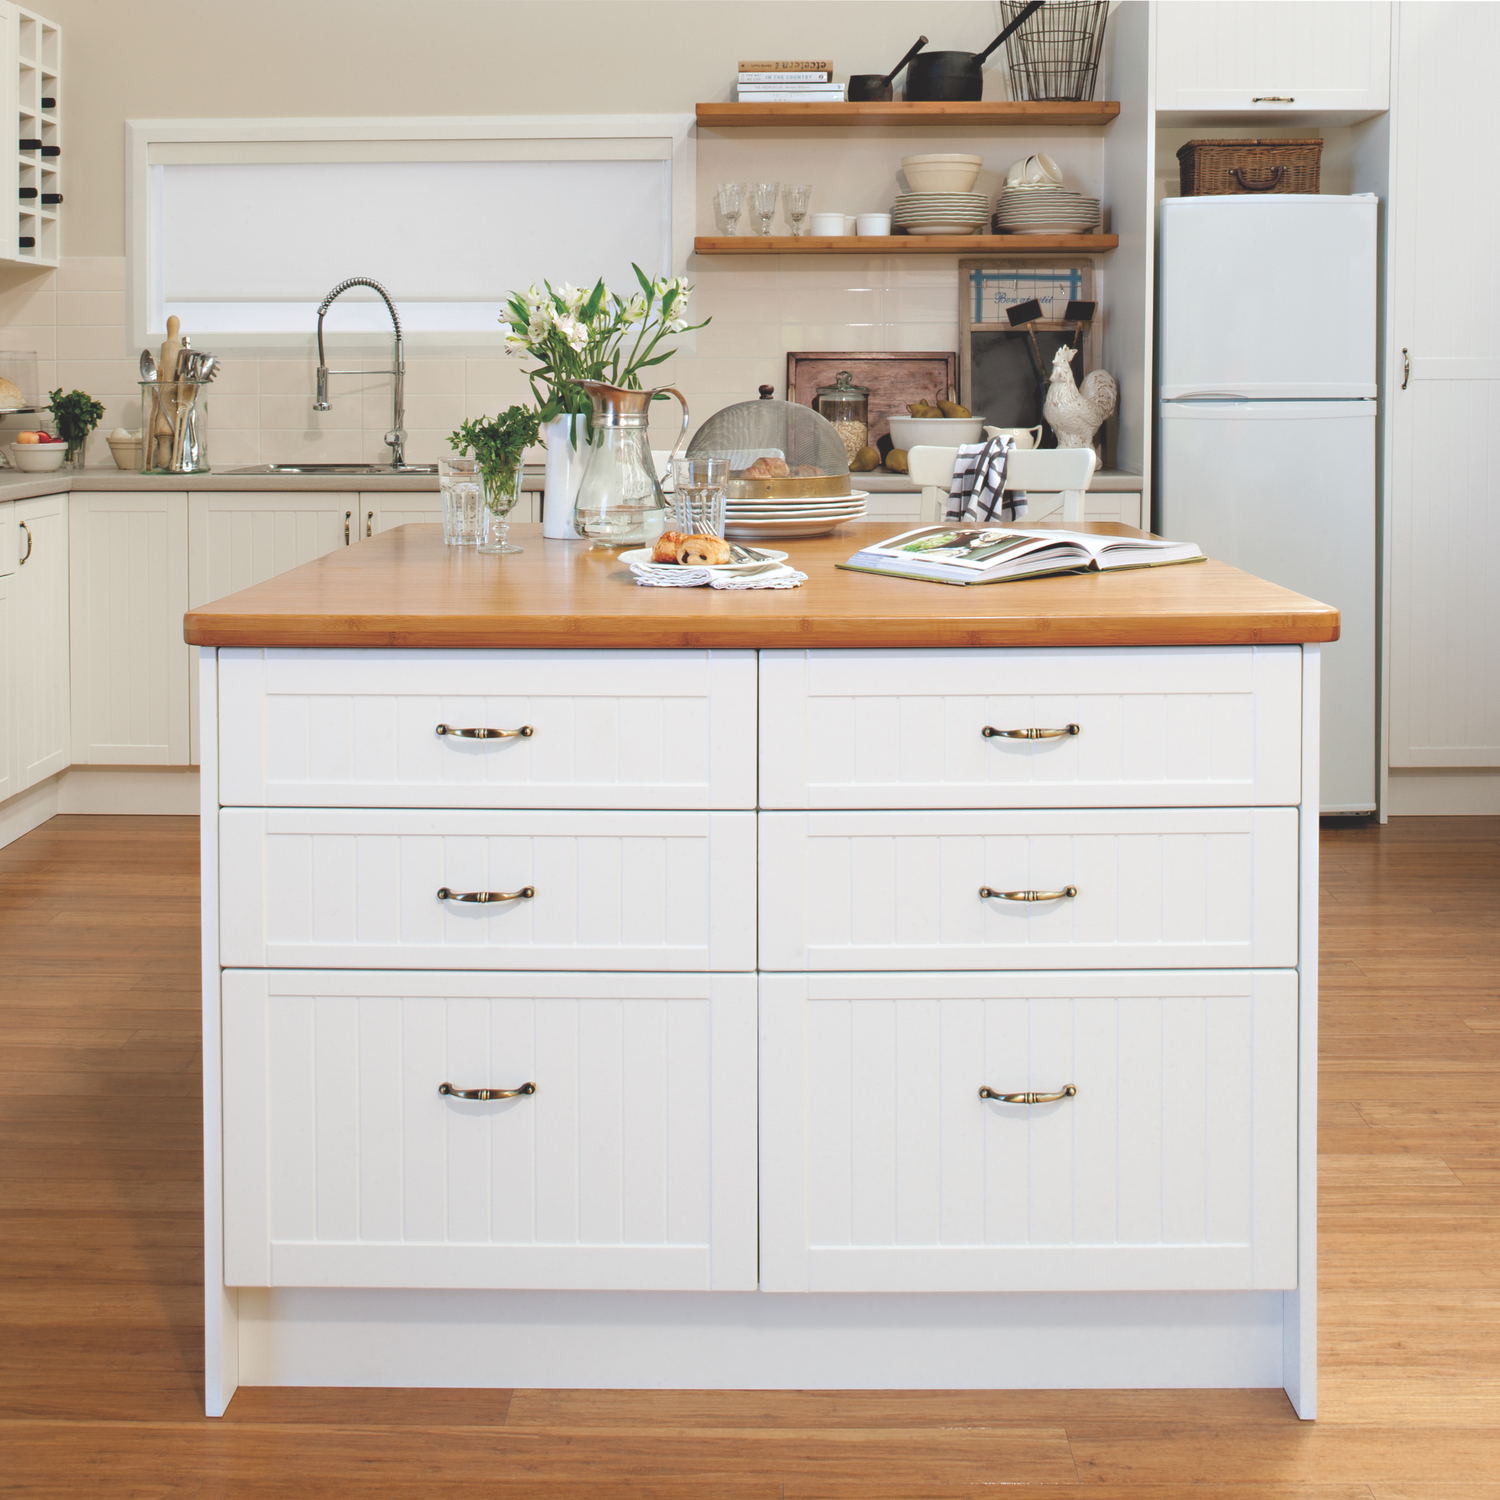 Flat Pack Kitchen Cupboards City Meets Country Kitchen Ideas And Inspiration